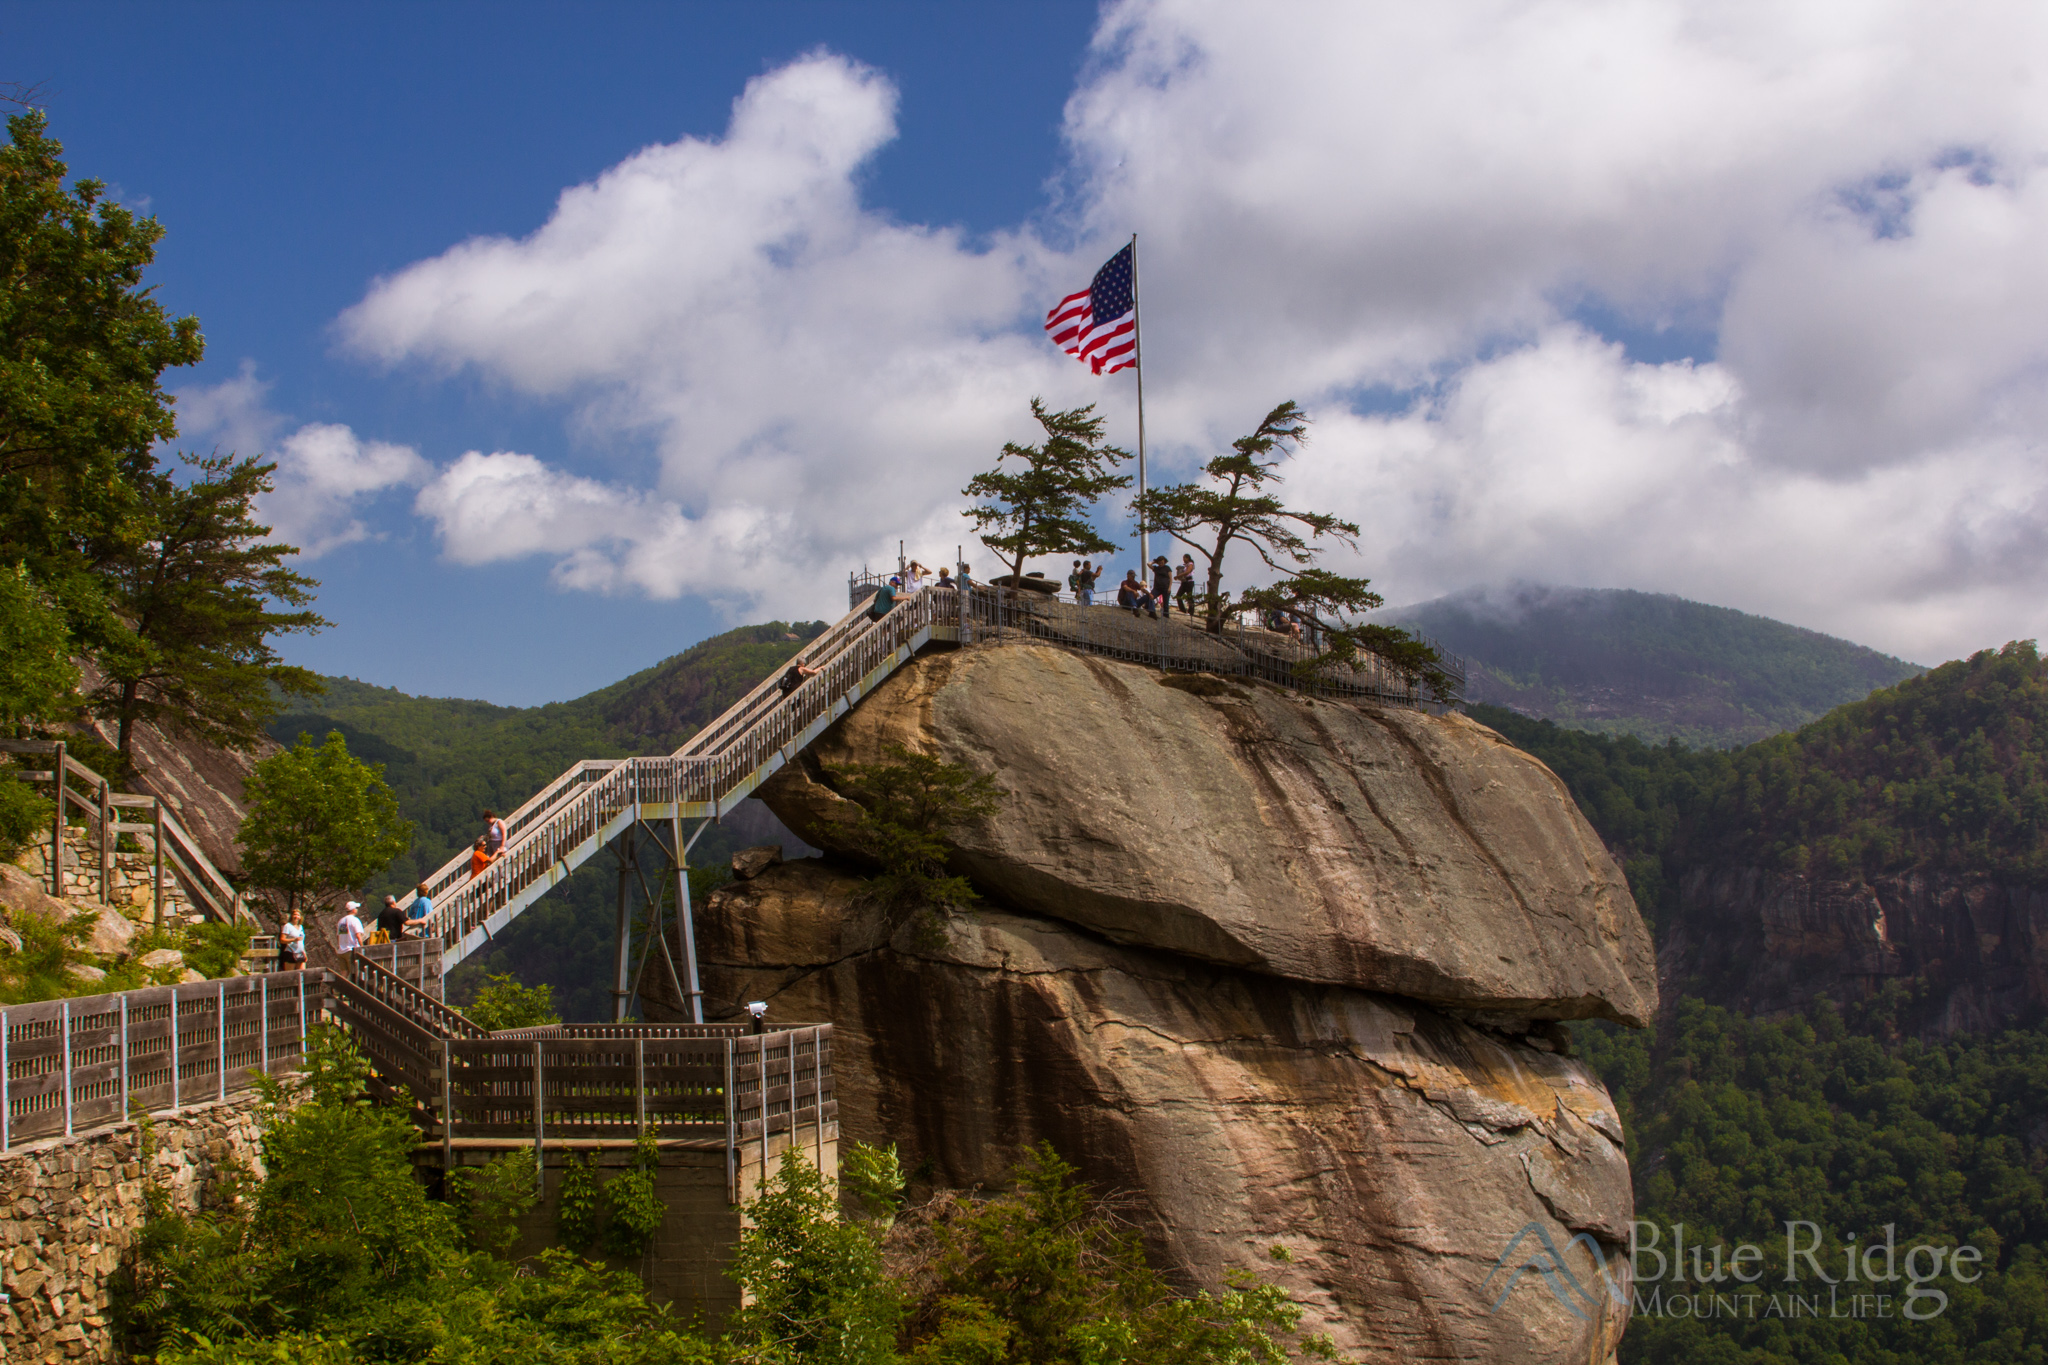 The Chimney, at Chimney Rock State Park